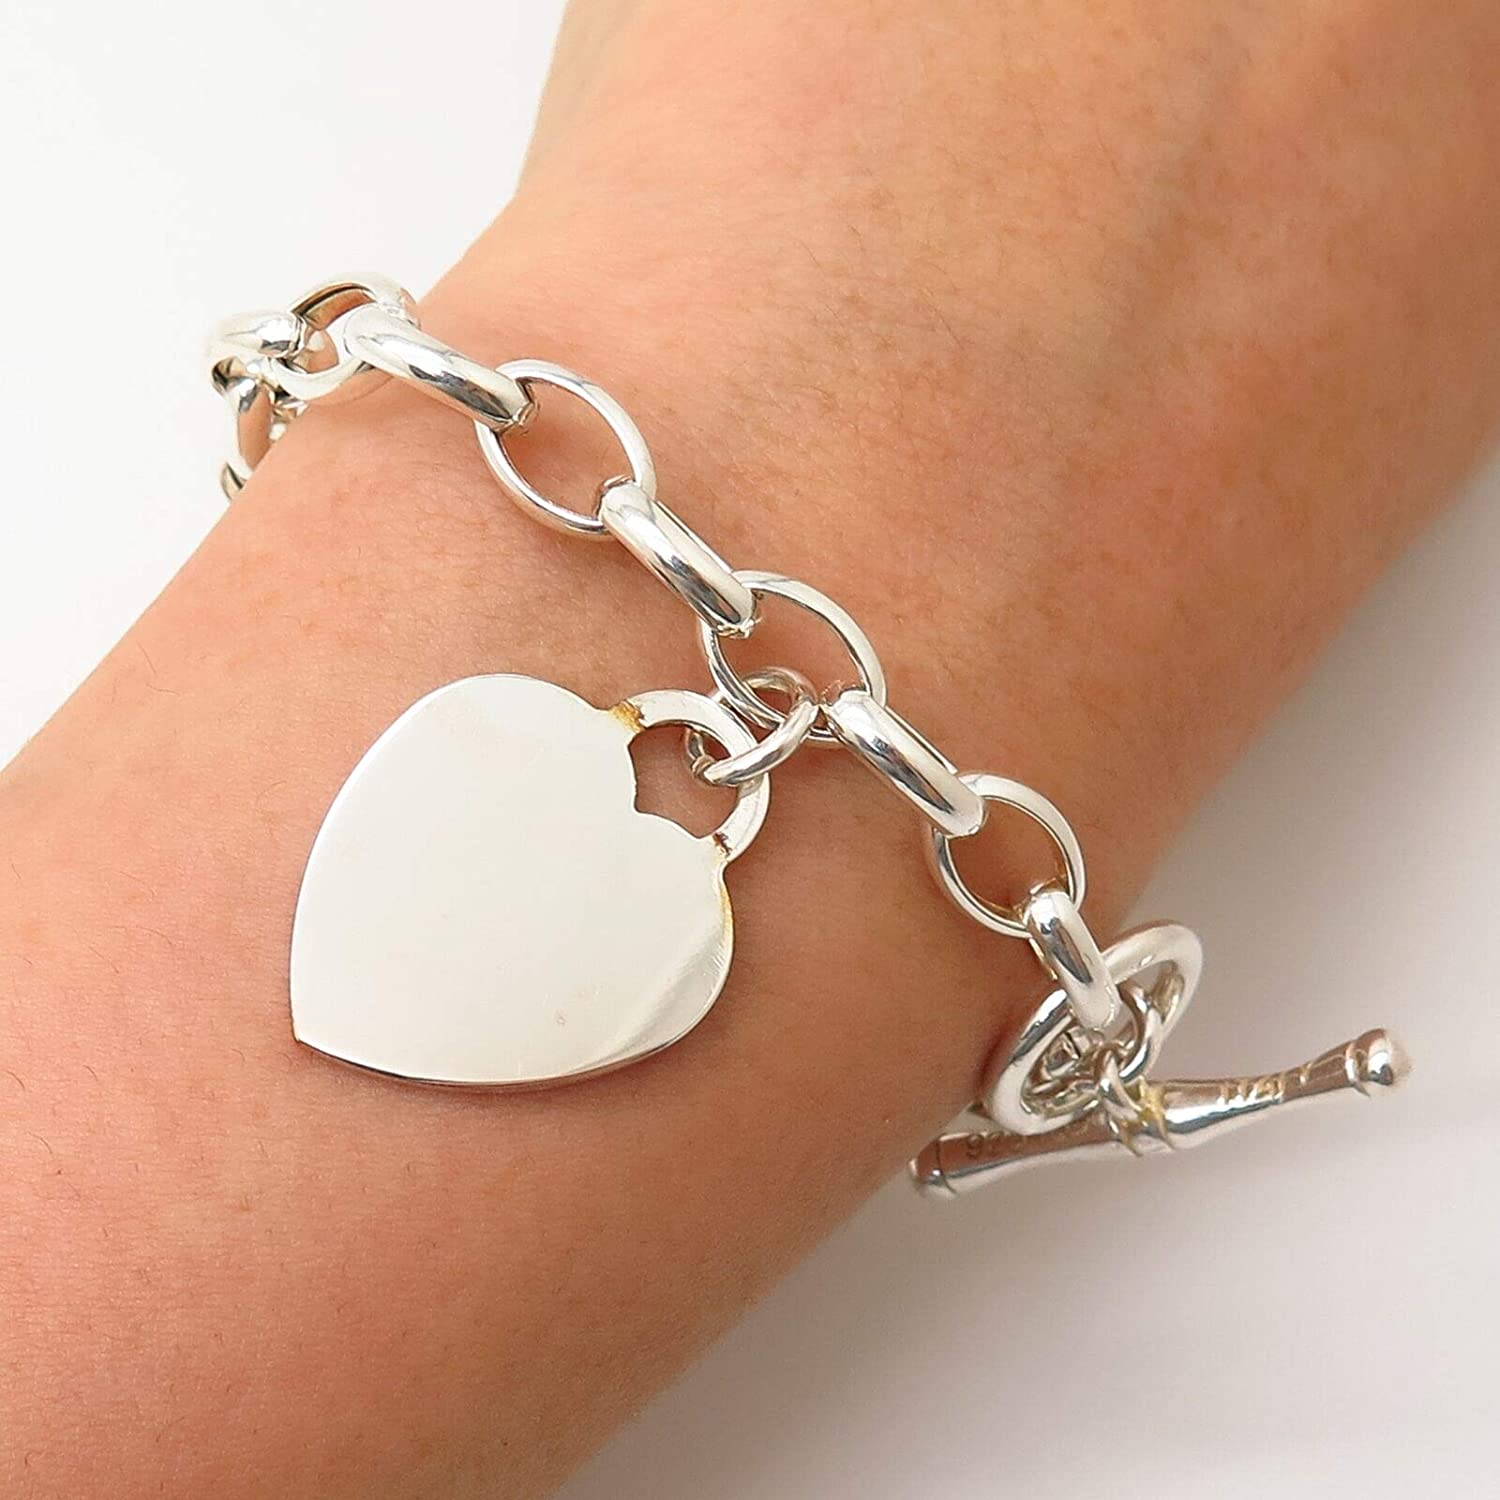 925 Sterling Silver Italy IBB Heart Tag Charm Cable Link Bracelet 6 3/4